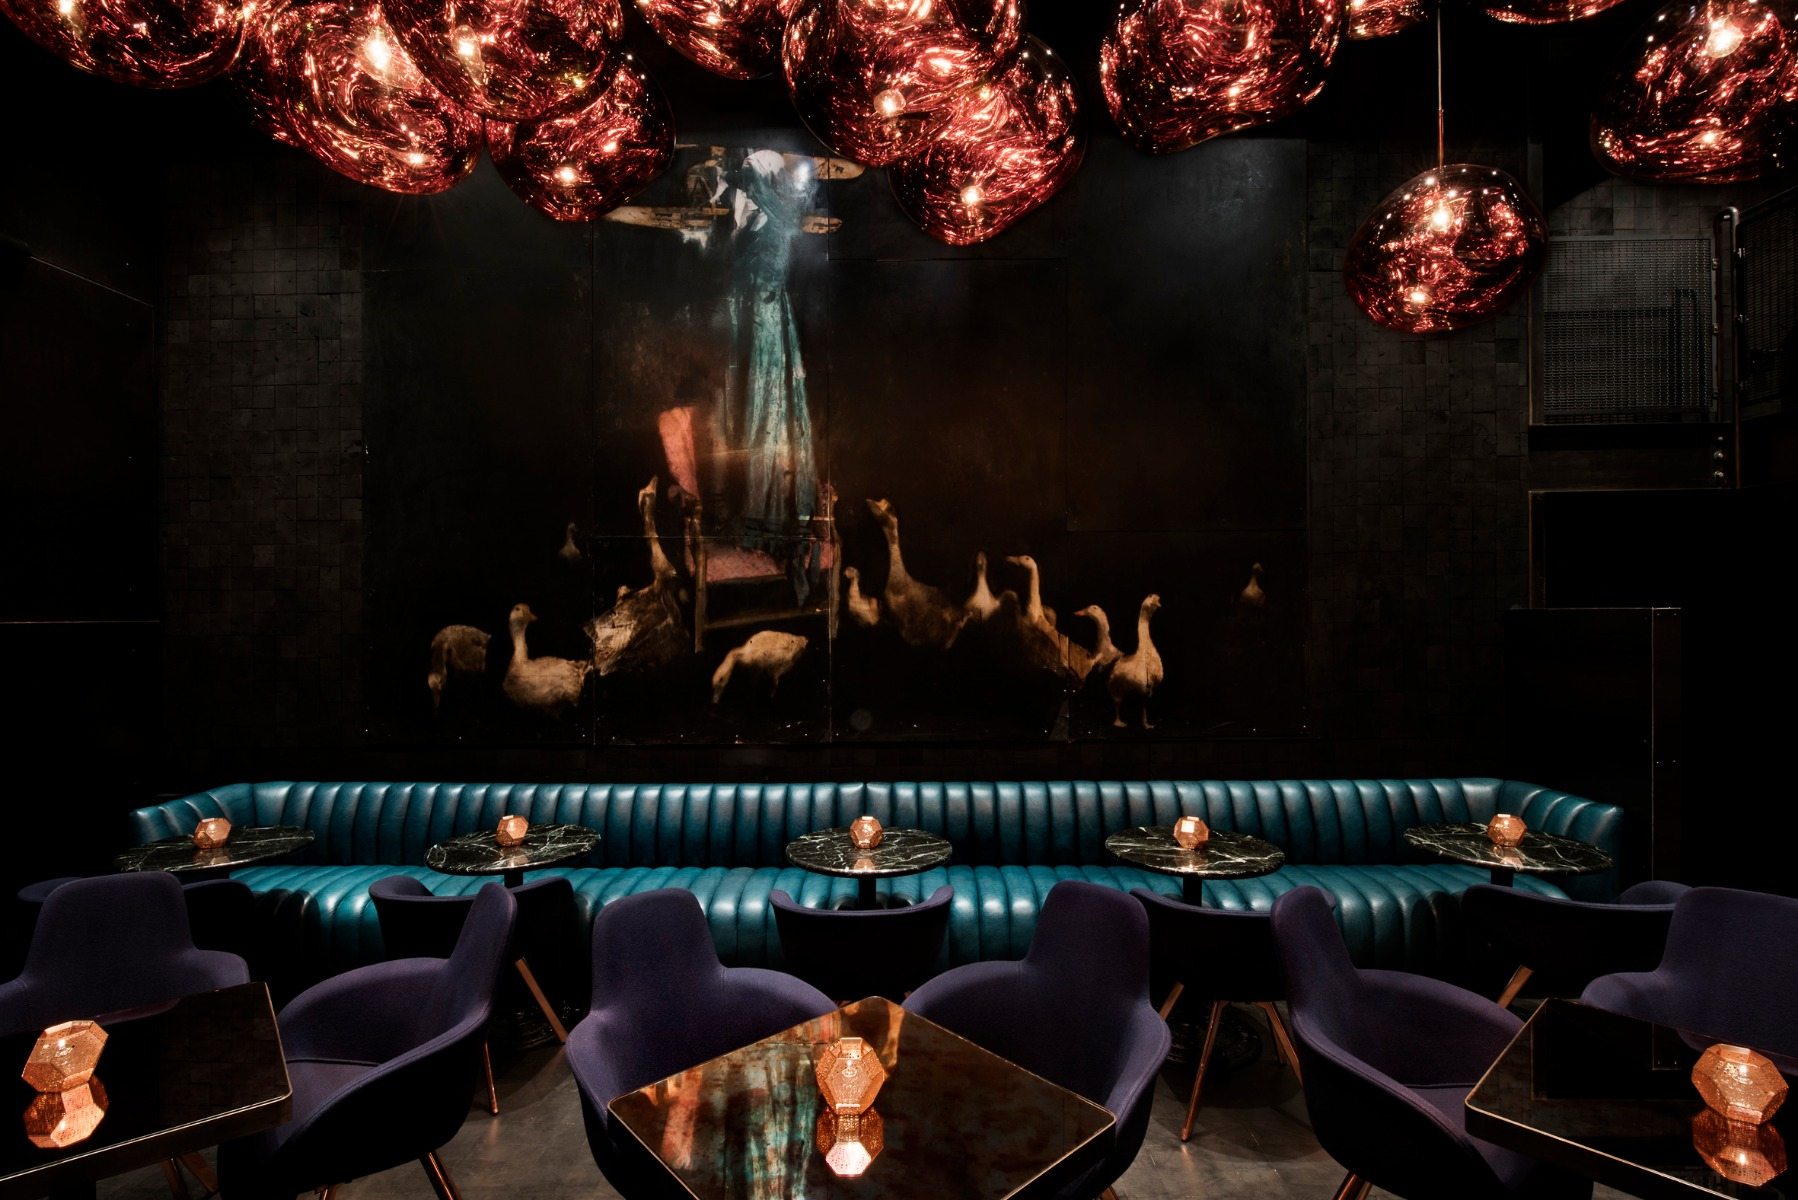 Tom Dixon Himitsu Bar in Atlanta featuring copper Melt pendants, Scoop High Back chairs and copper Etch tea light holders.